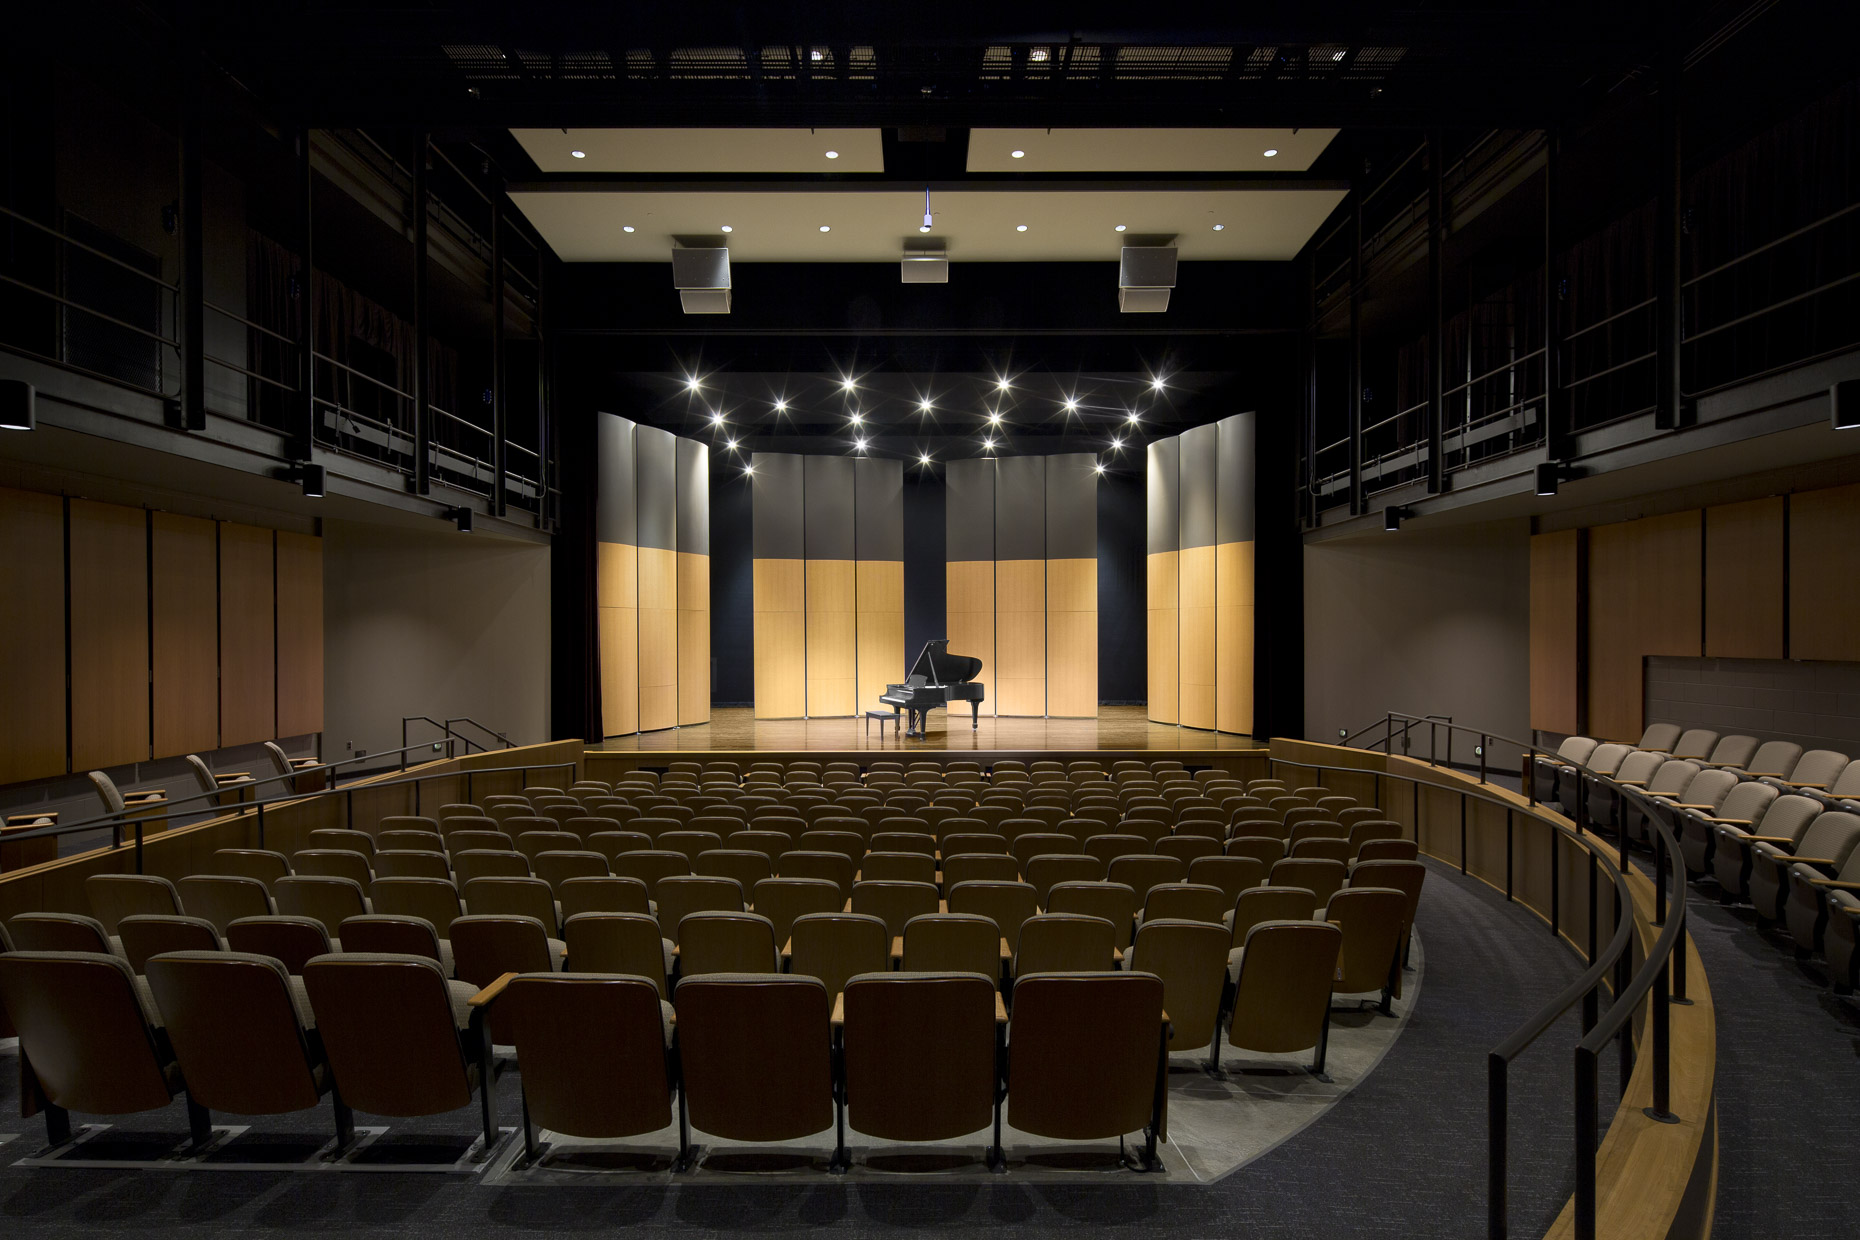 Columbus School for Girls Performing Arts Center by DesignGroup photographed by Brad Feinknopf based in Columbus, Ohio